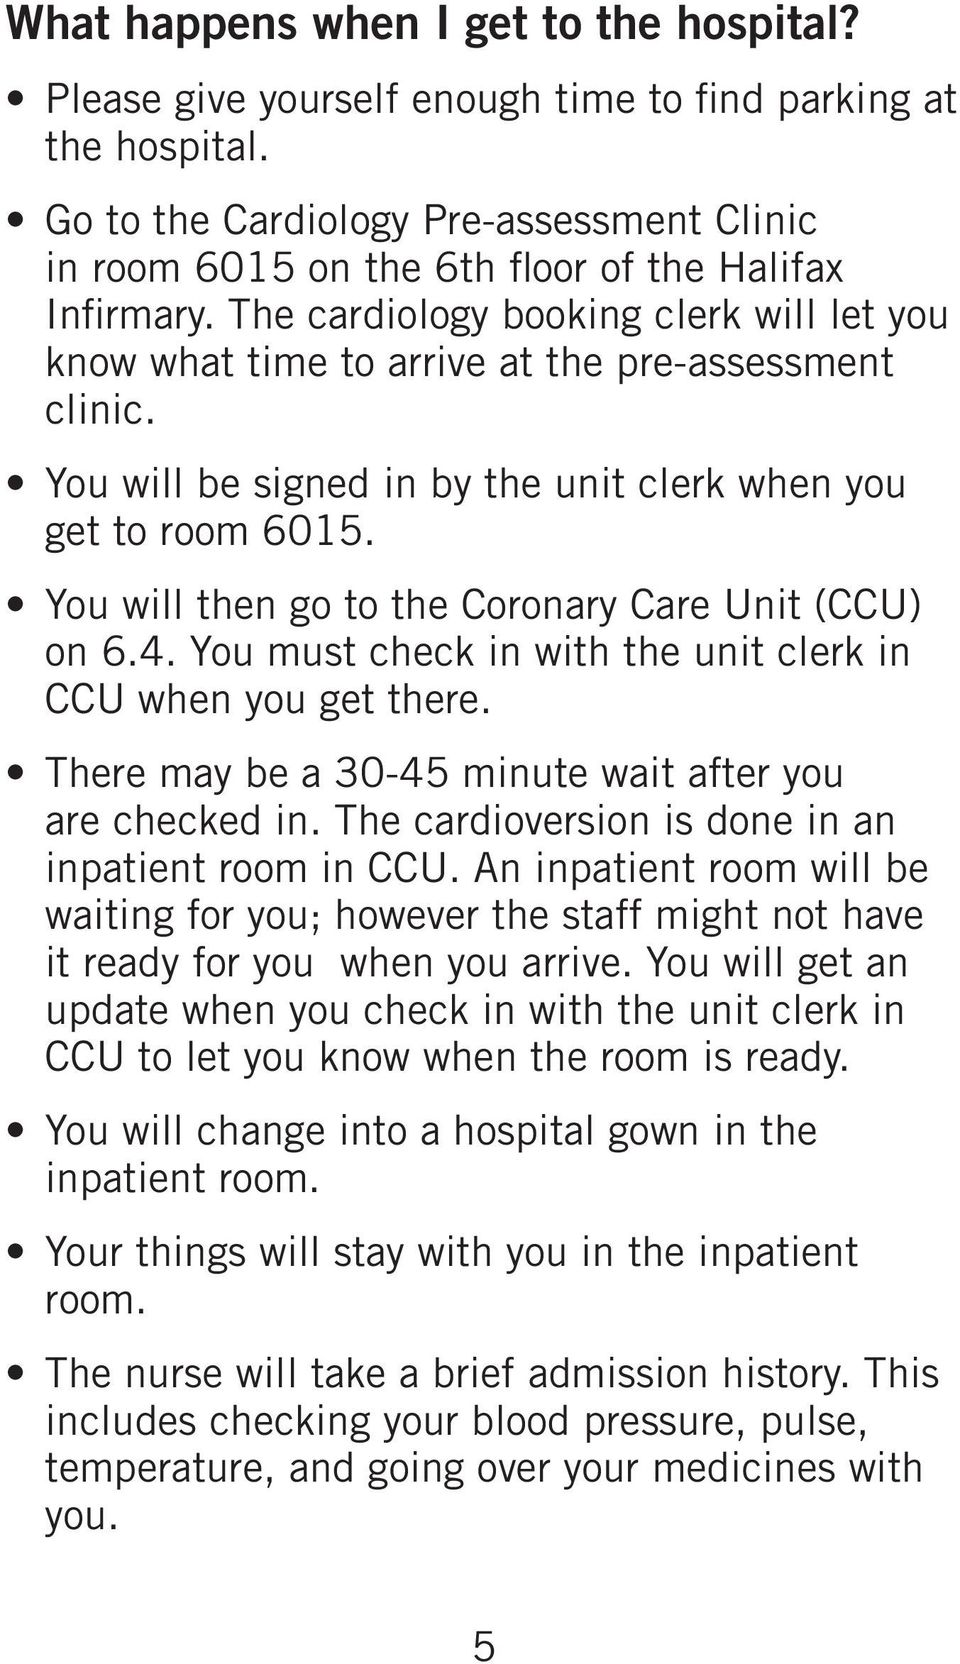 You will be signed in by the unit clerk when you get to room 6015. You will then go to the Coronary Care Unit (CCU) on 6.4. You must check in with the unit clerk in CCU when you get there.